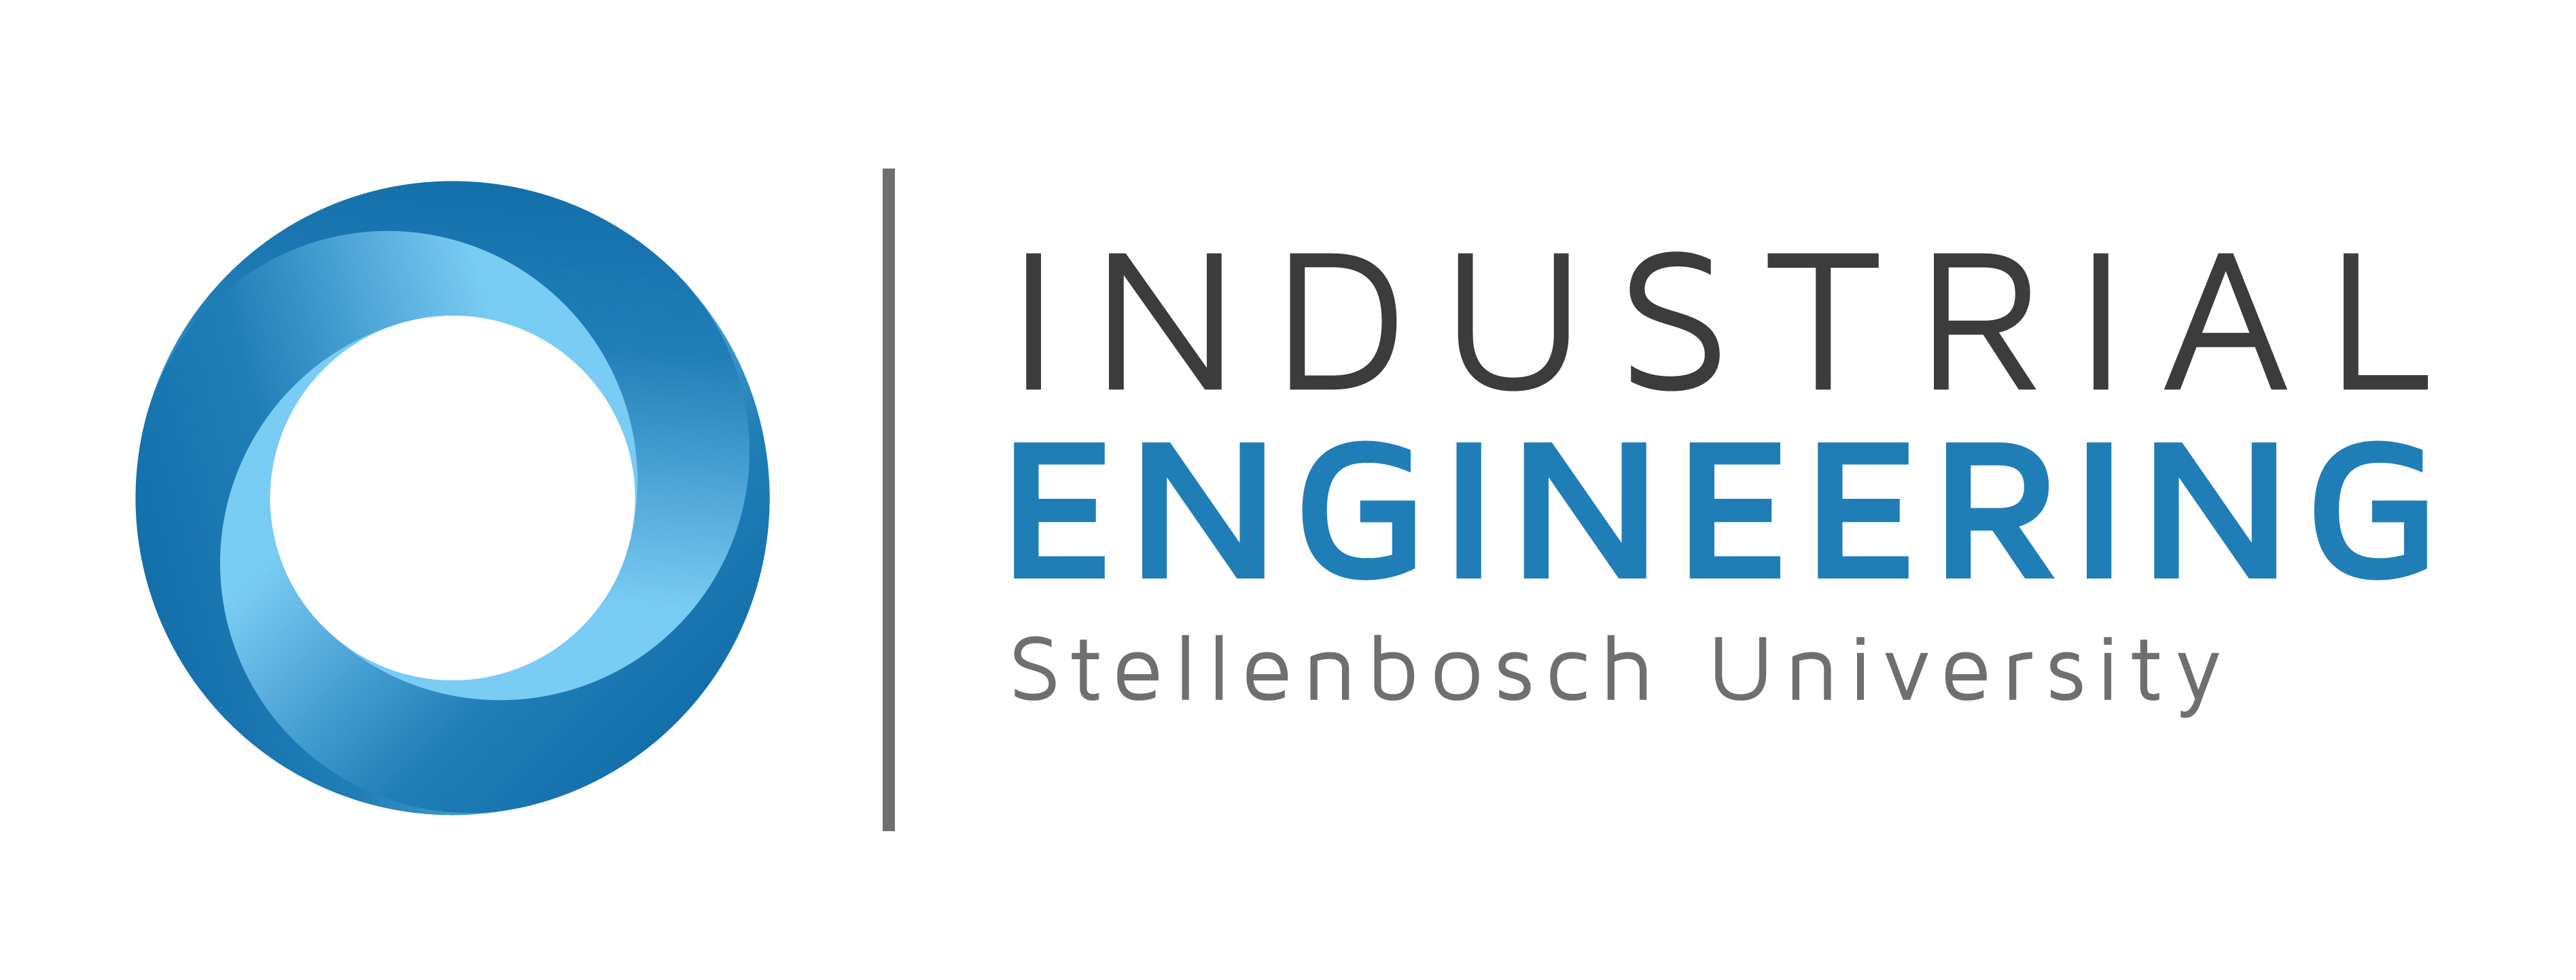 industrial engineering thesis Master of science in industrial engineering the department awards the degree of master of science in industrial engineering to eligible students who complete 24 credits in coursework and successfully defend a thesis.